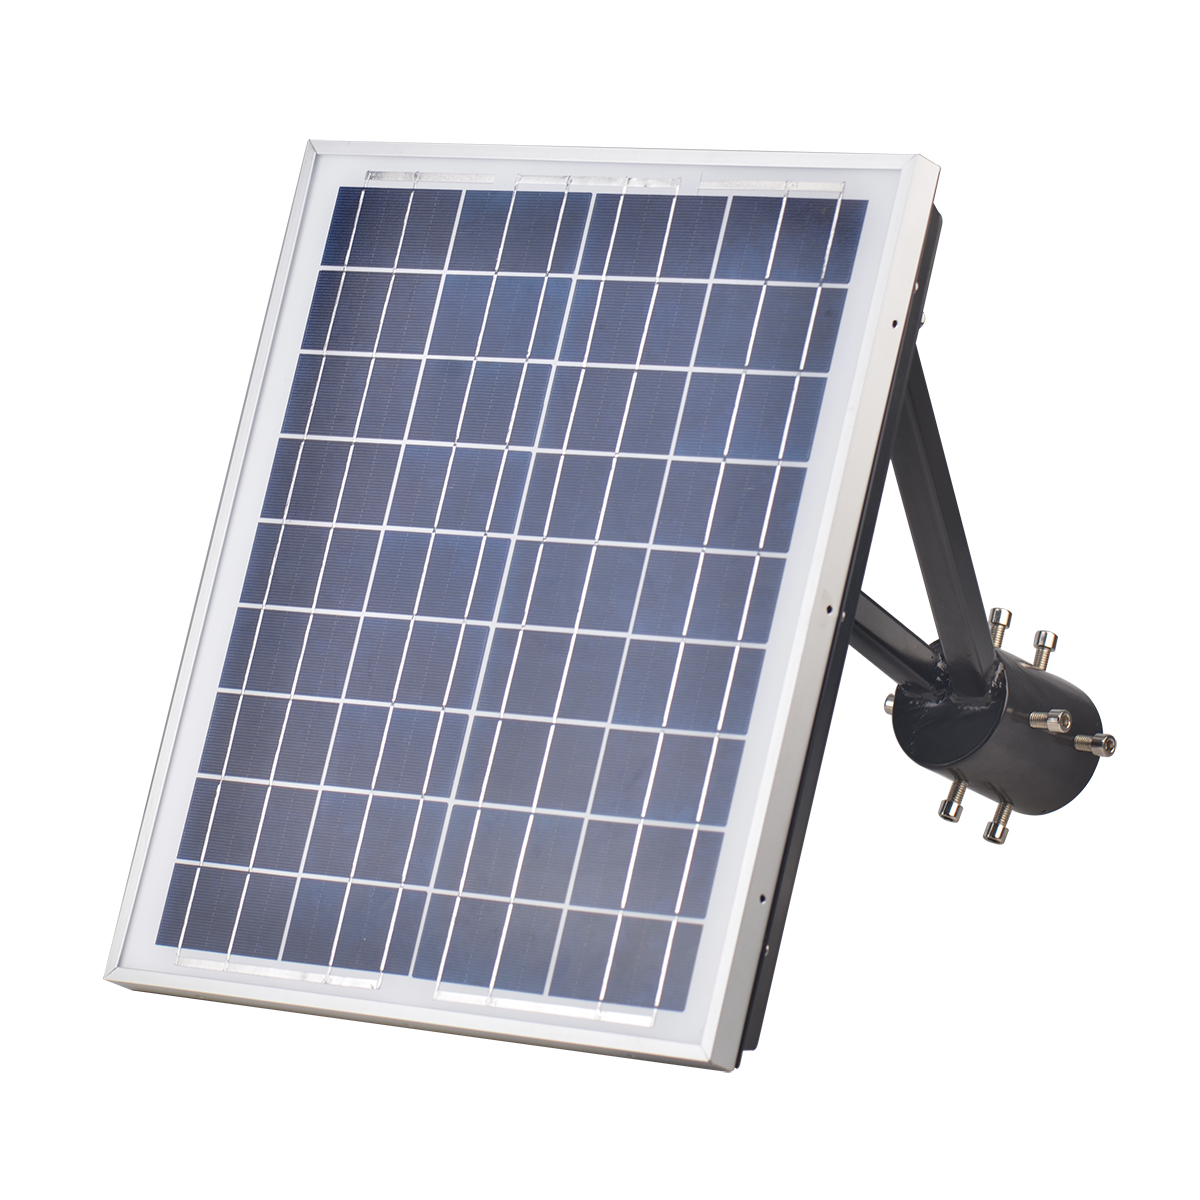 25W Square Solar led top light for gardens-4